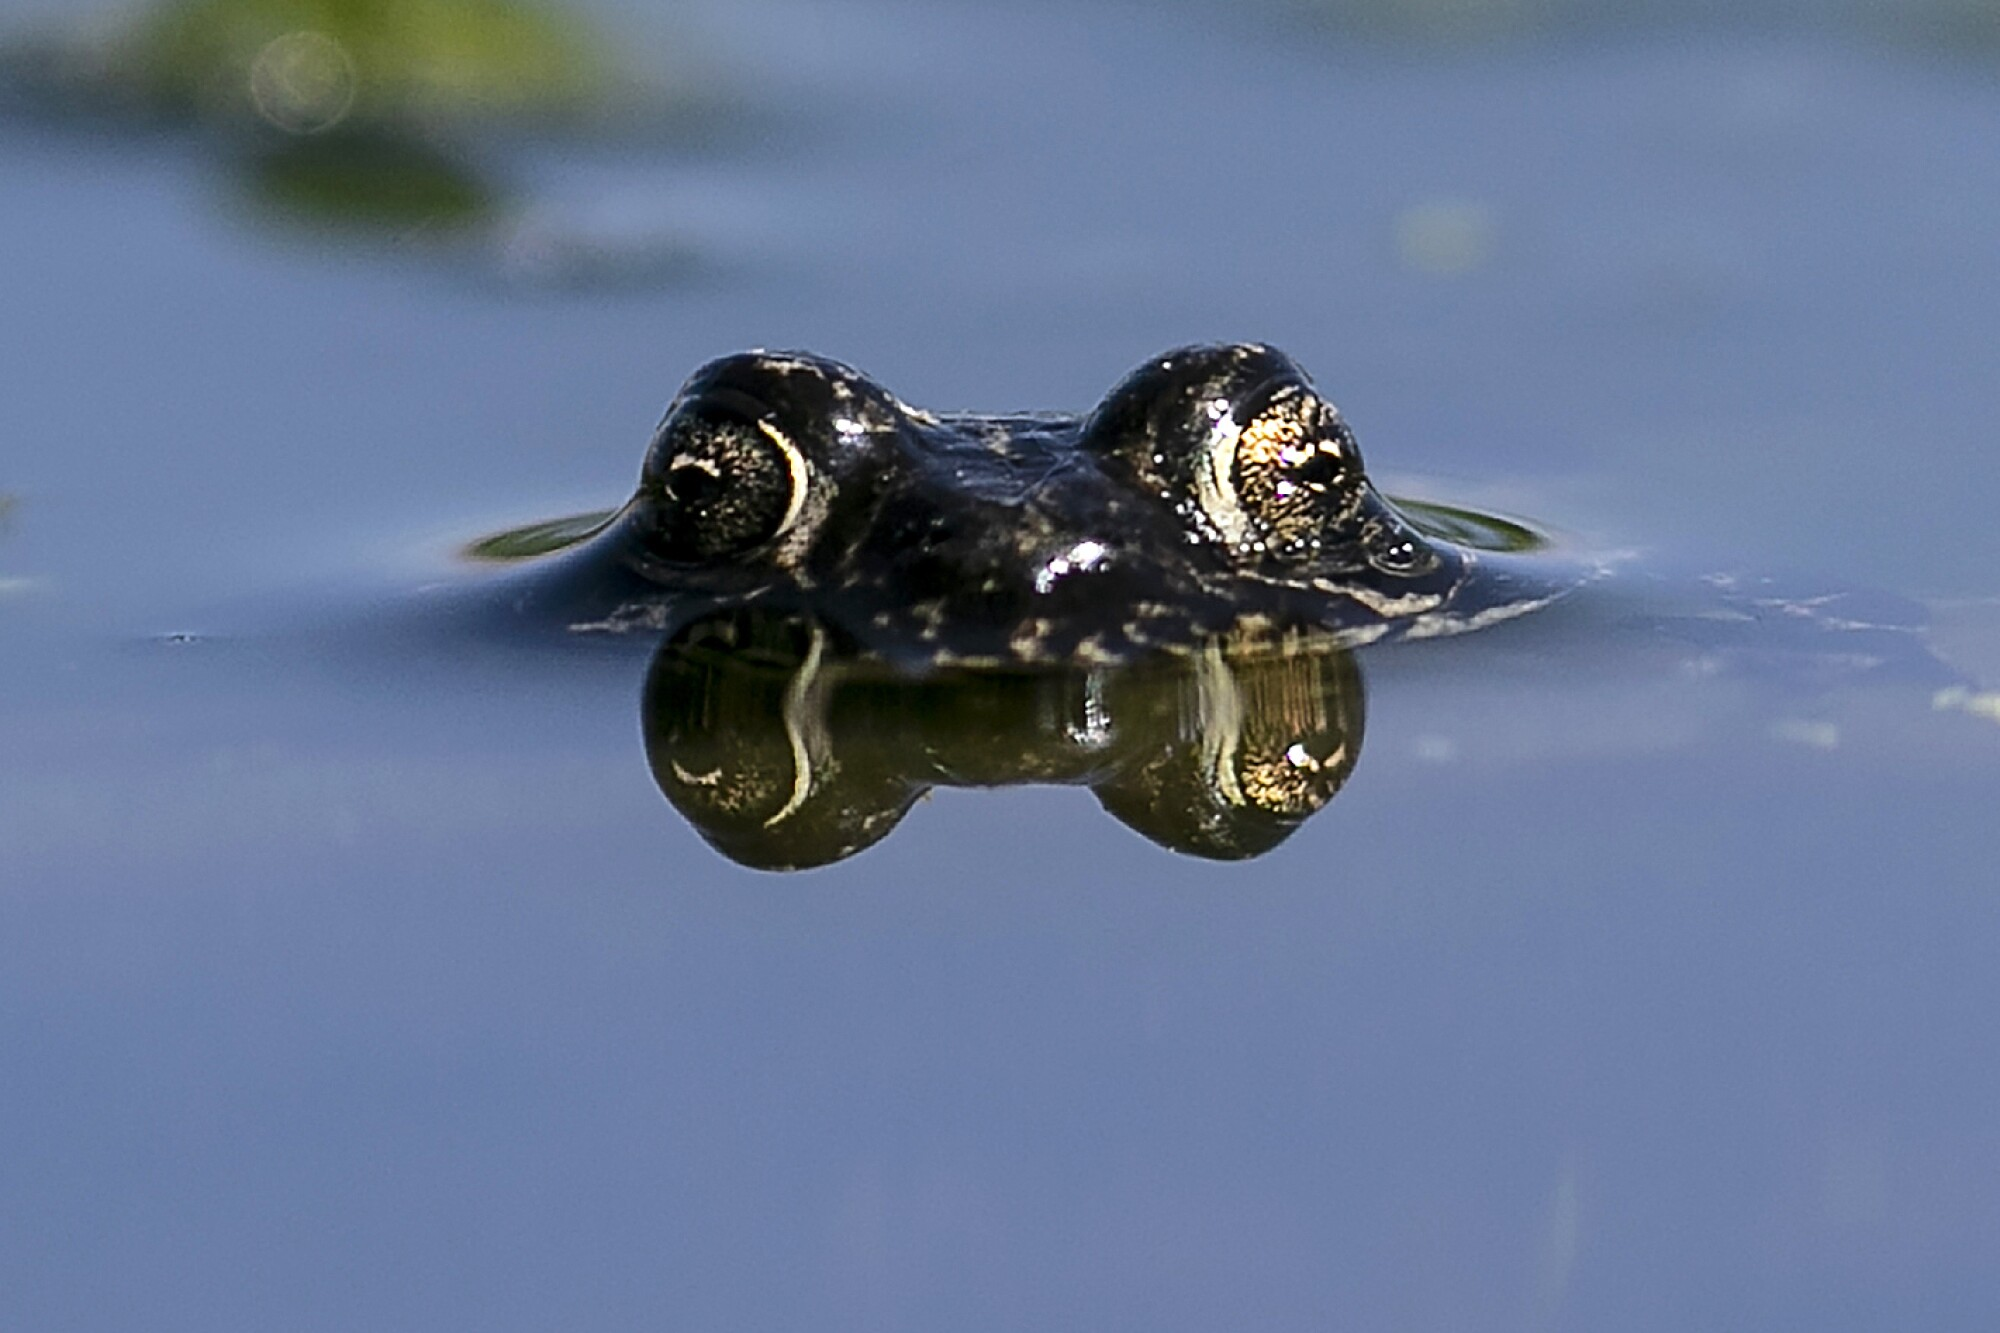 The eyes of a submerged black toad protrude above the waters of Deep Valley Springs